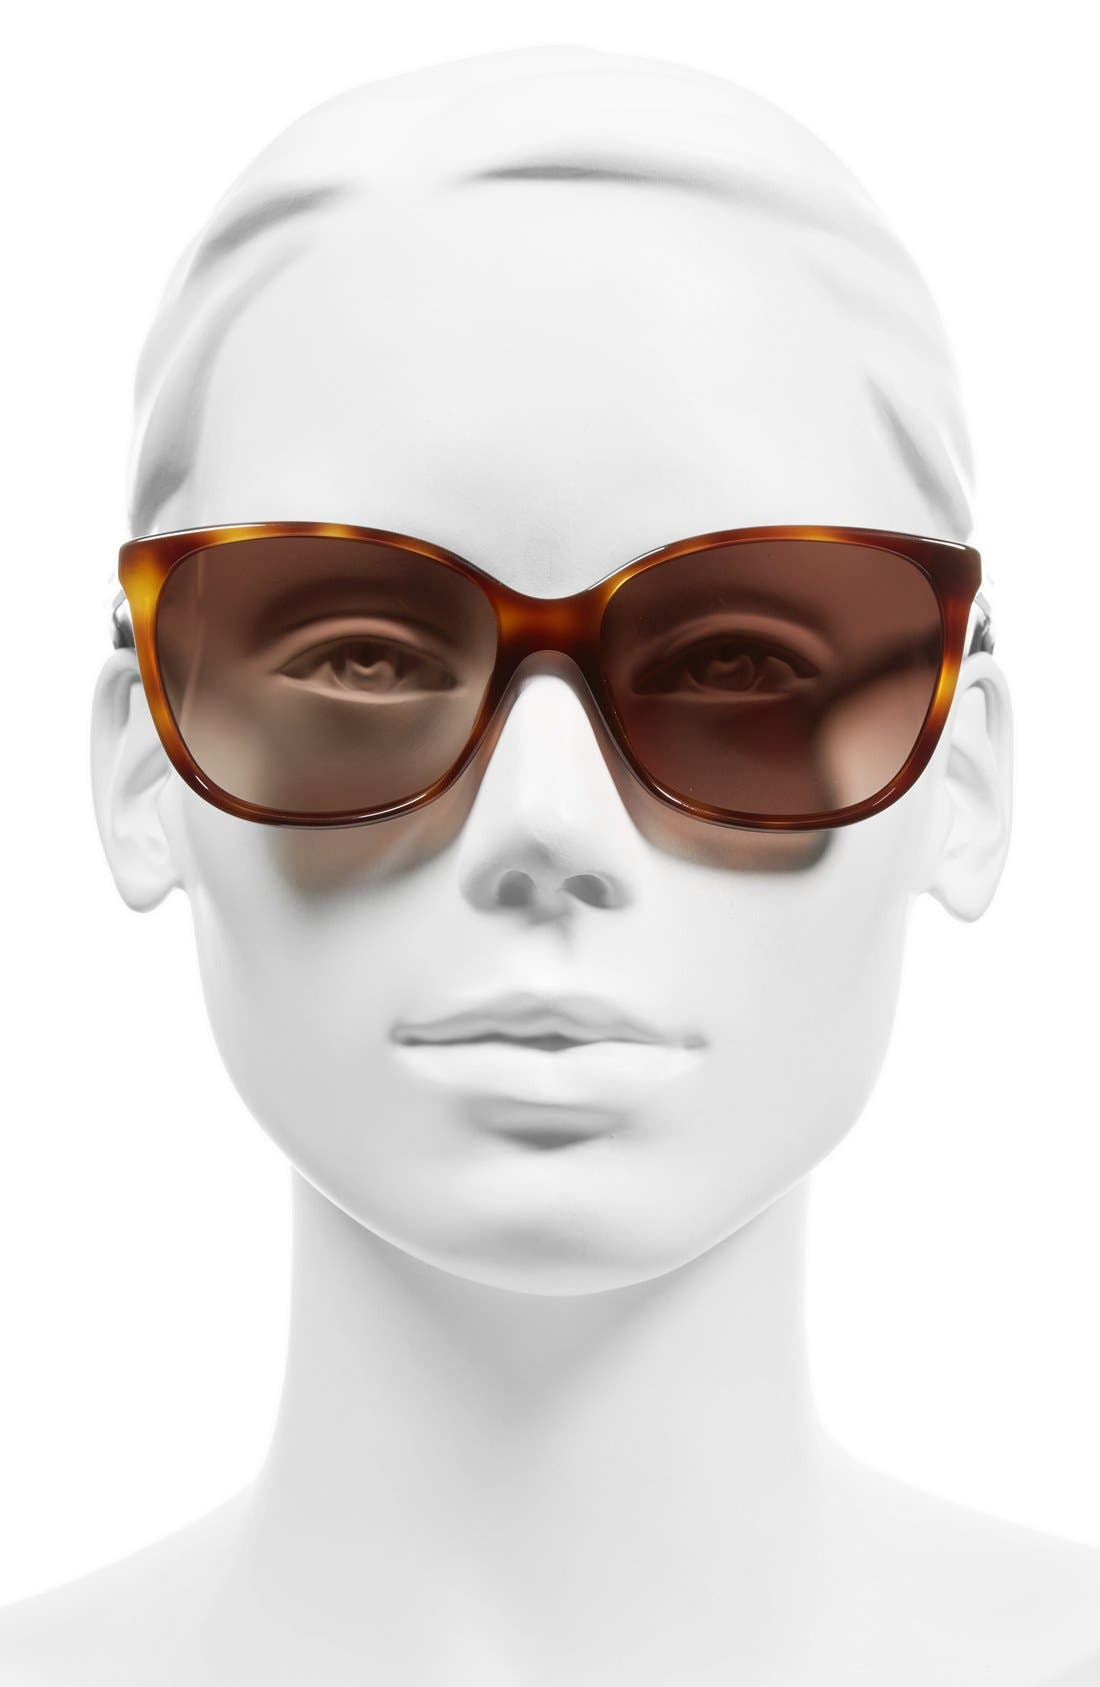 57mm Oversized Sunglasses,                             Alternate thumbnail 2, color,                             Havana